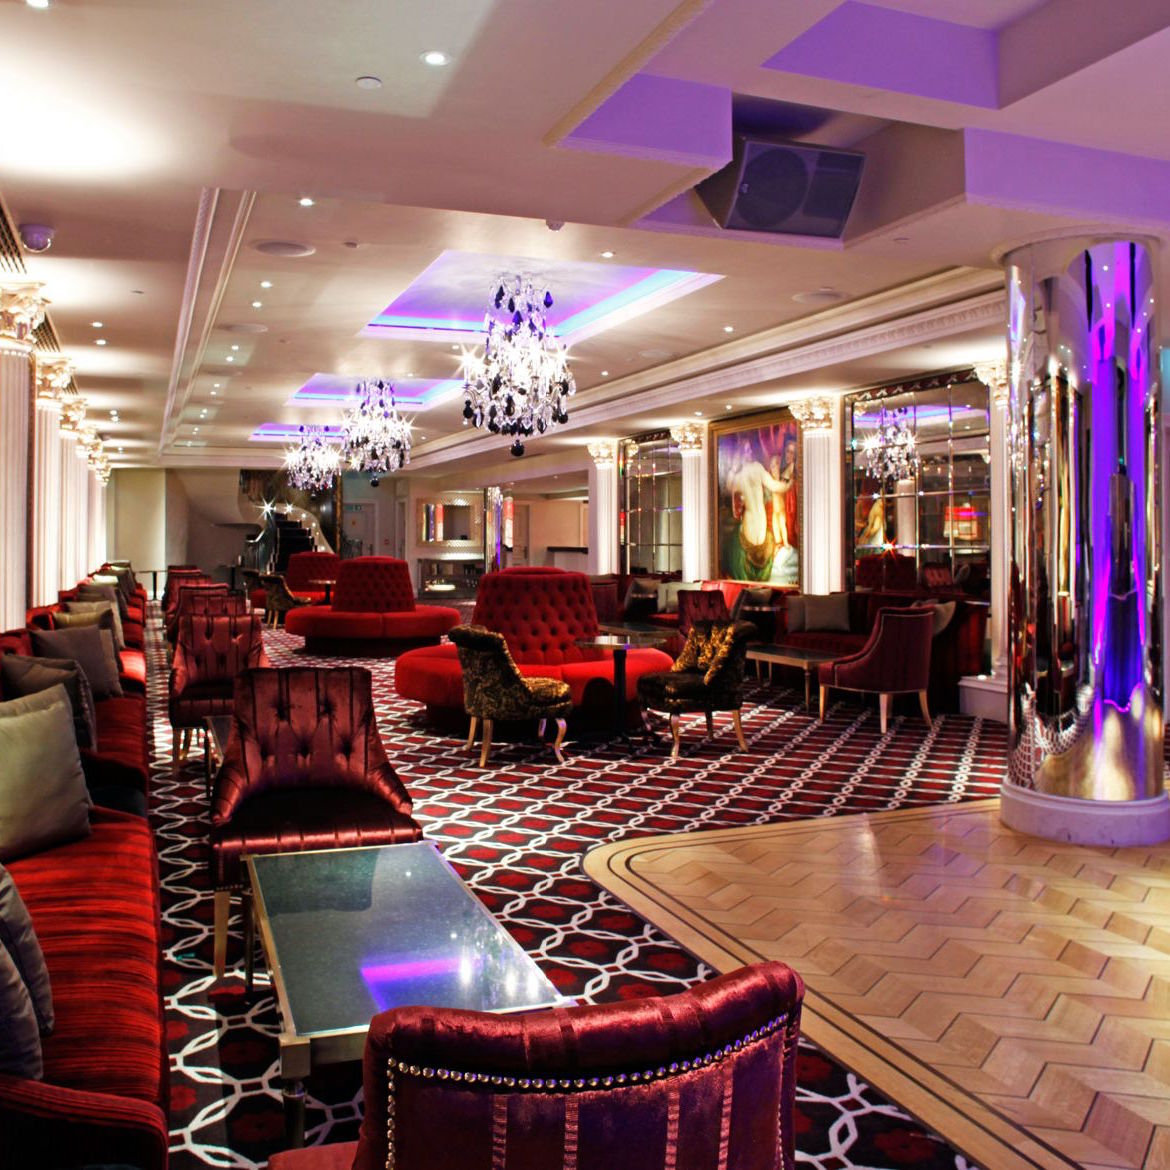 The Sincura Group On Twitter Sincura S Recommended Members Club 5 Hertford Street Mayfair Warm Fires And Cigar Shop As Well As A Restaurant And A Nightclub There Is Something For Everyone